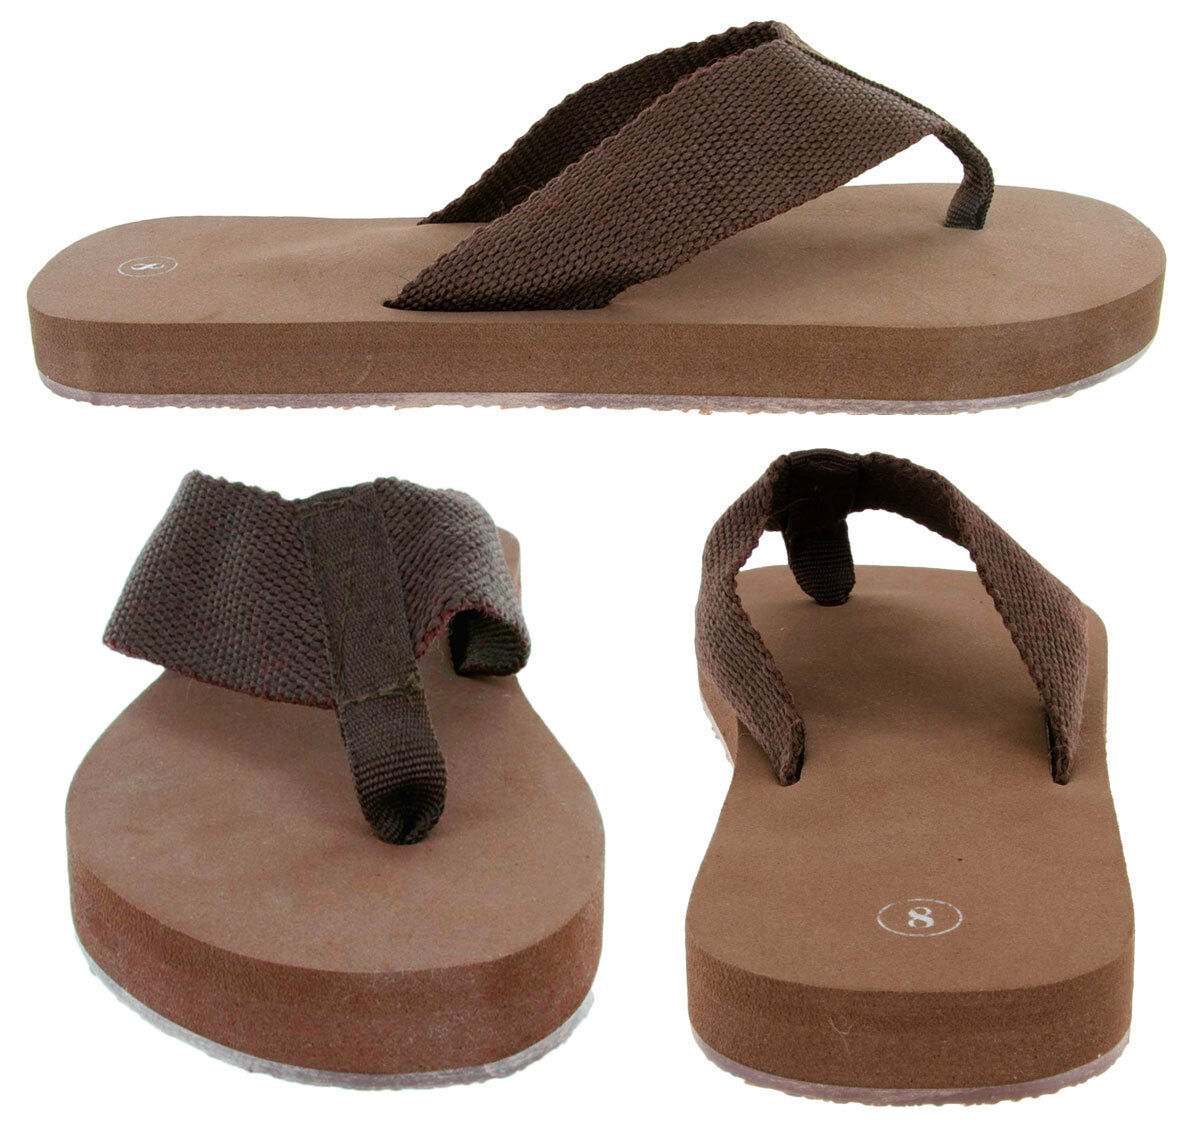 Gino-2 Womens Flip Fashion Platform Flip Womens Flop Sandals, 3/4